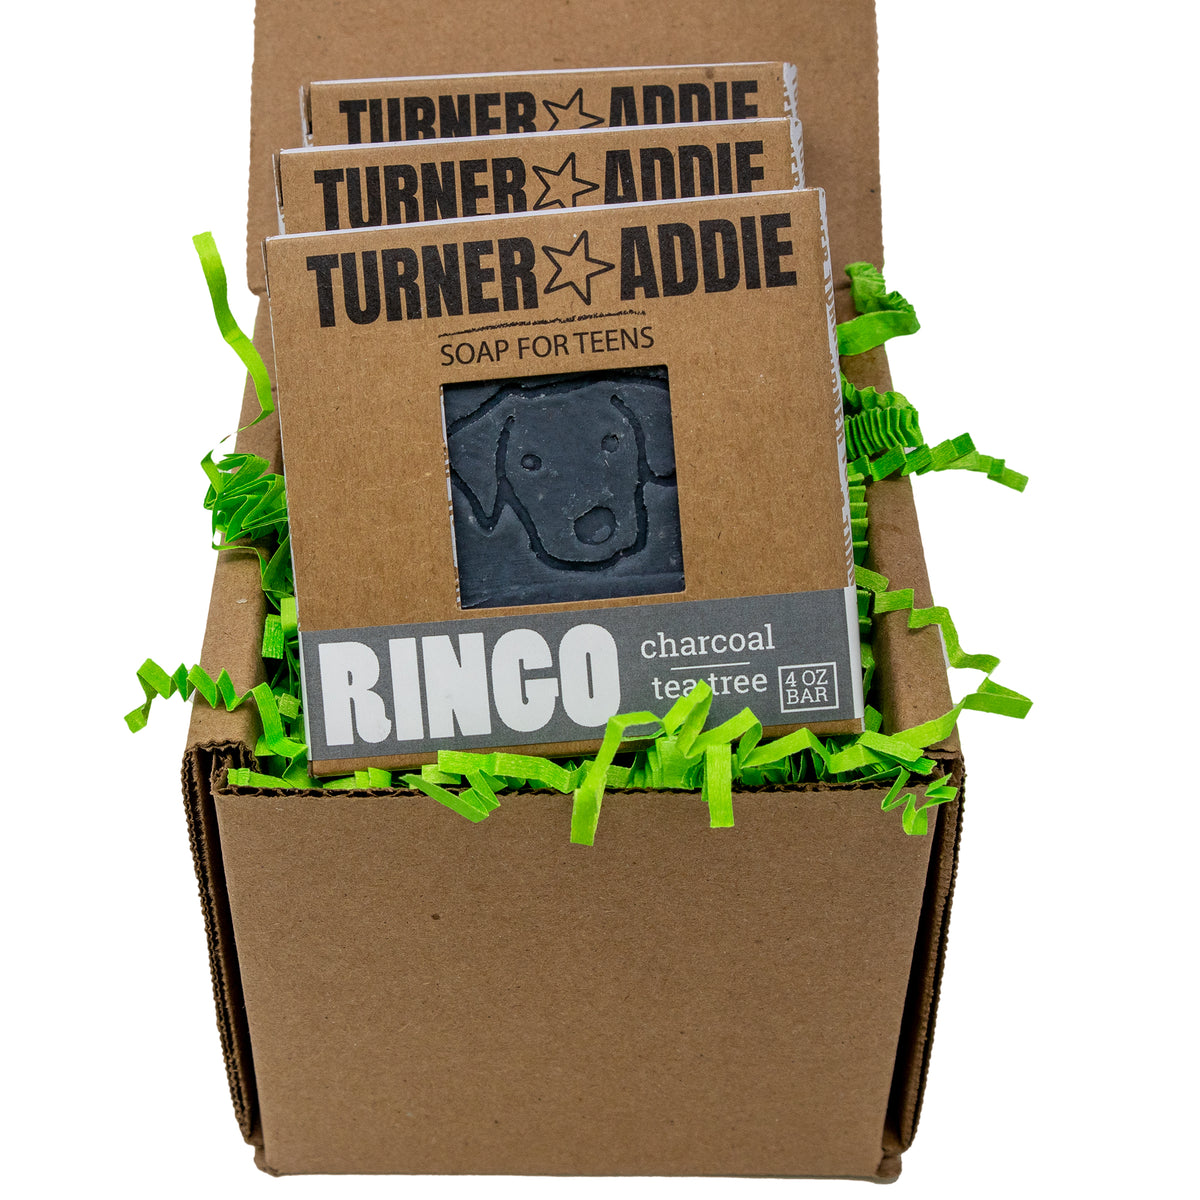 Soap Bundle (3 Bars) - RINGO, G.O.A.T., Army Men Bars – Handmade Natural Soap for Teens